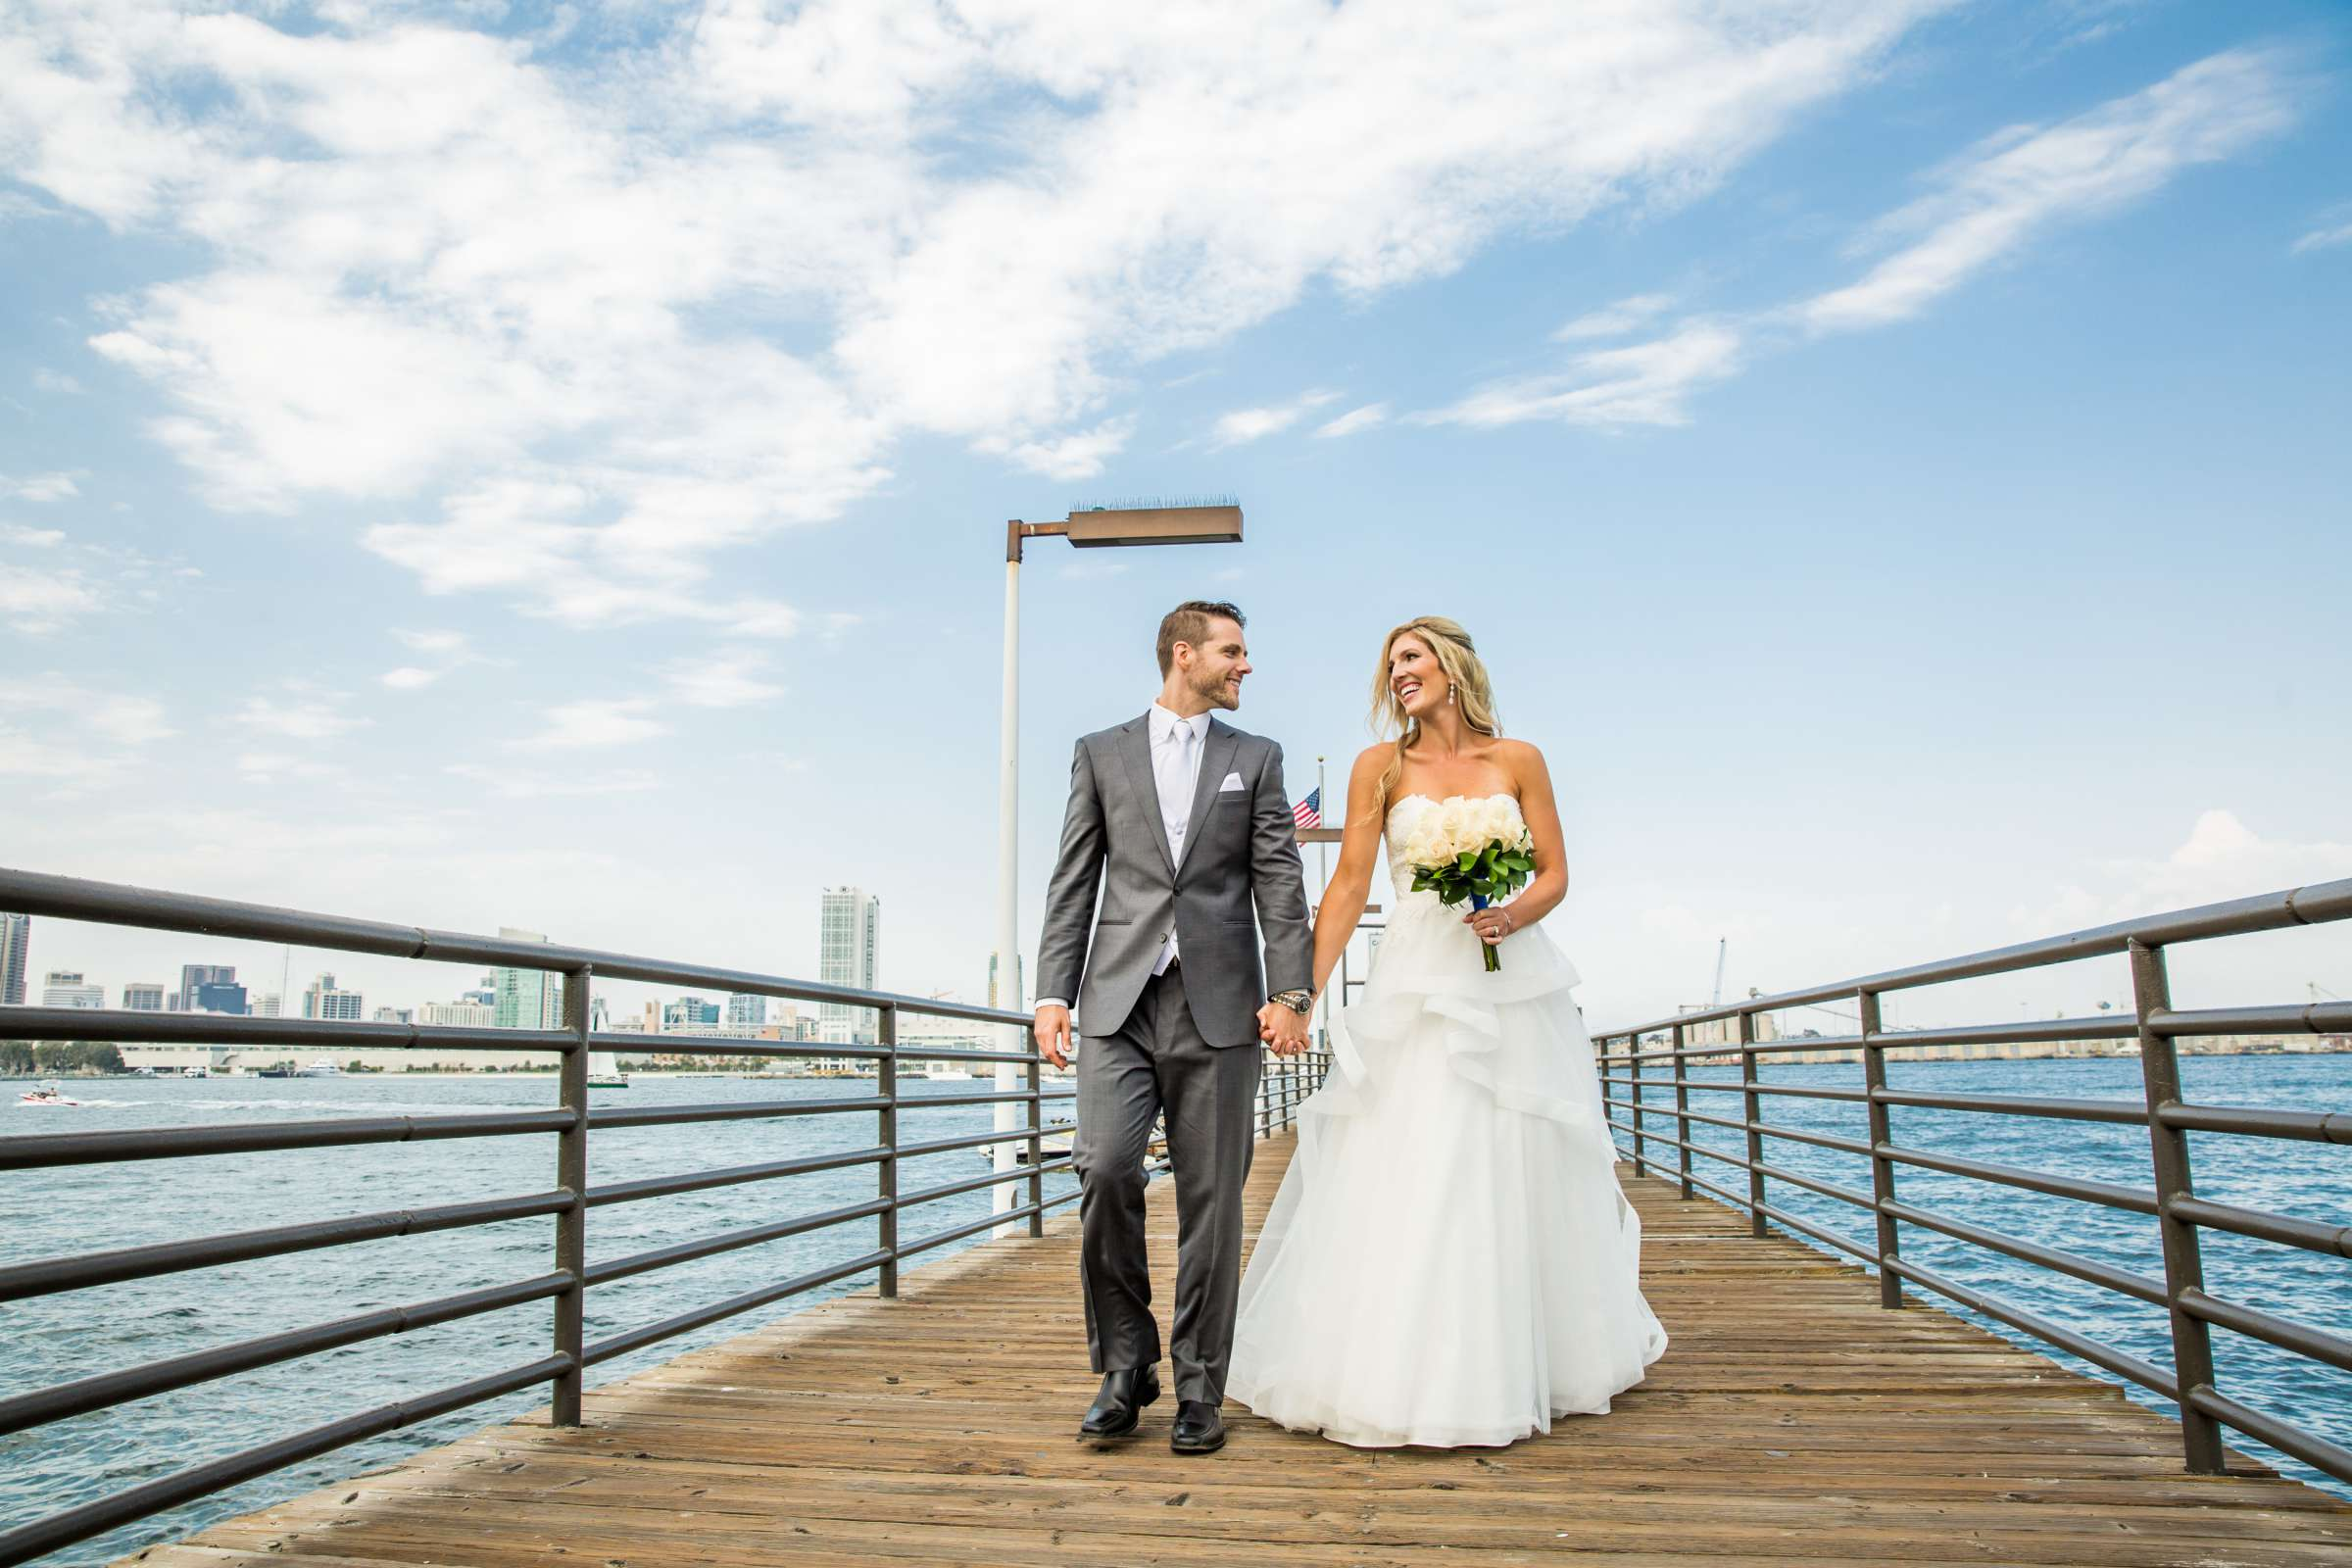 Coronado Island Marriott Resort & Spa Wedding coordinated by Lindsay Nicole Weddings & Events, Christine and Preston Wedding Photo #245831 by True Photography